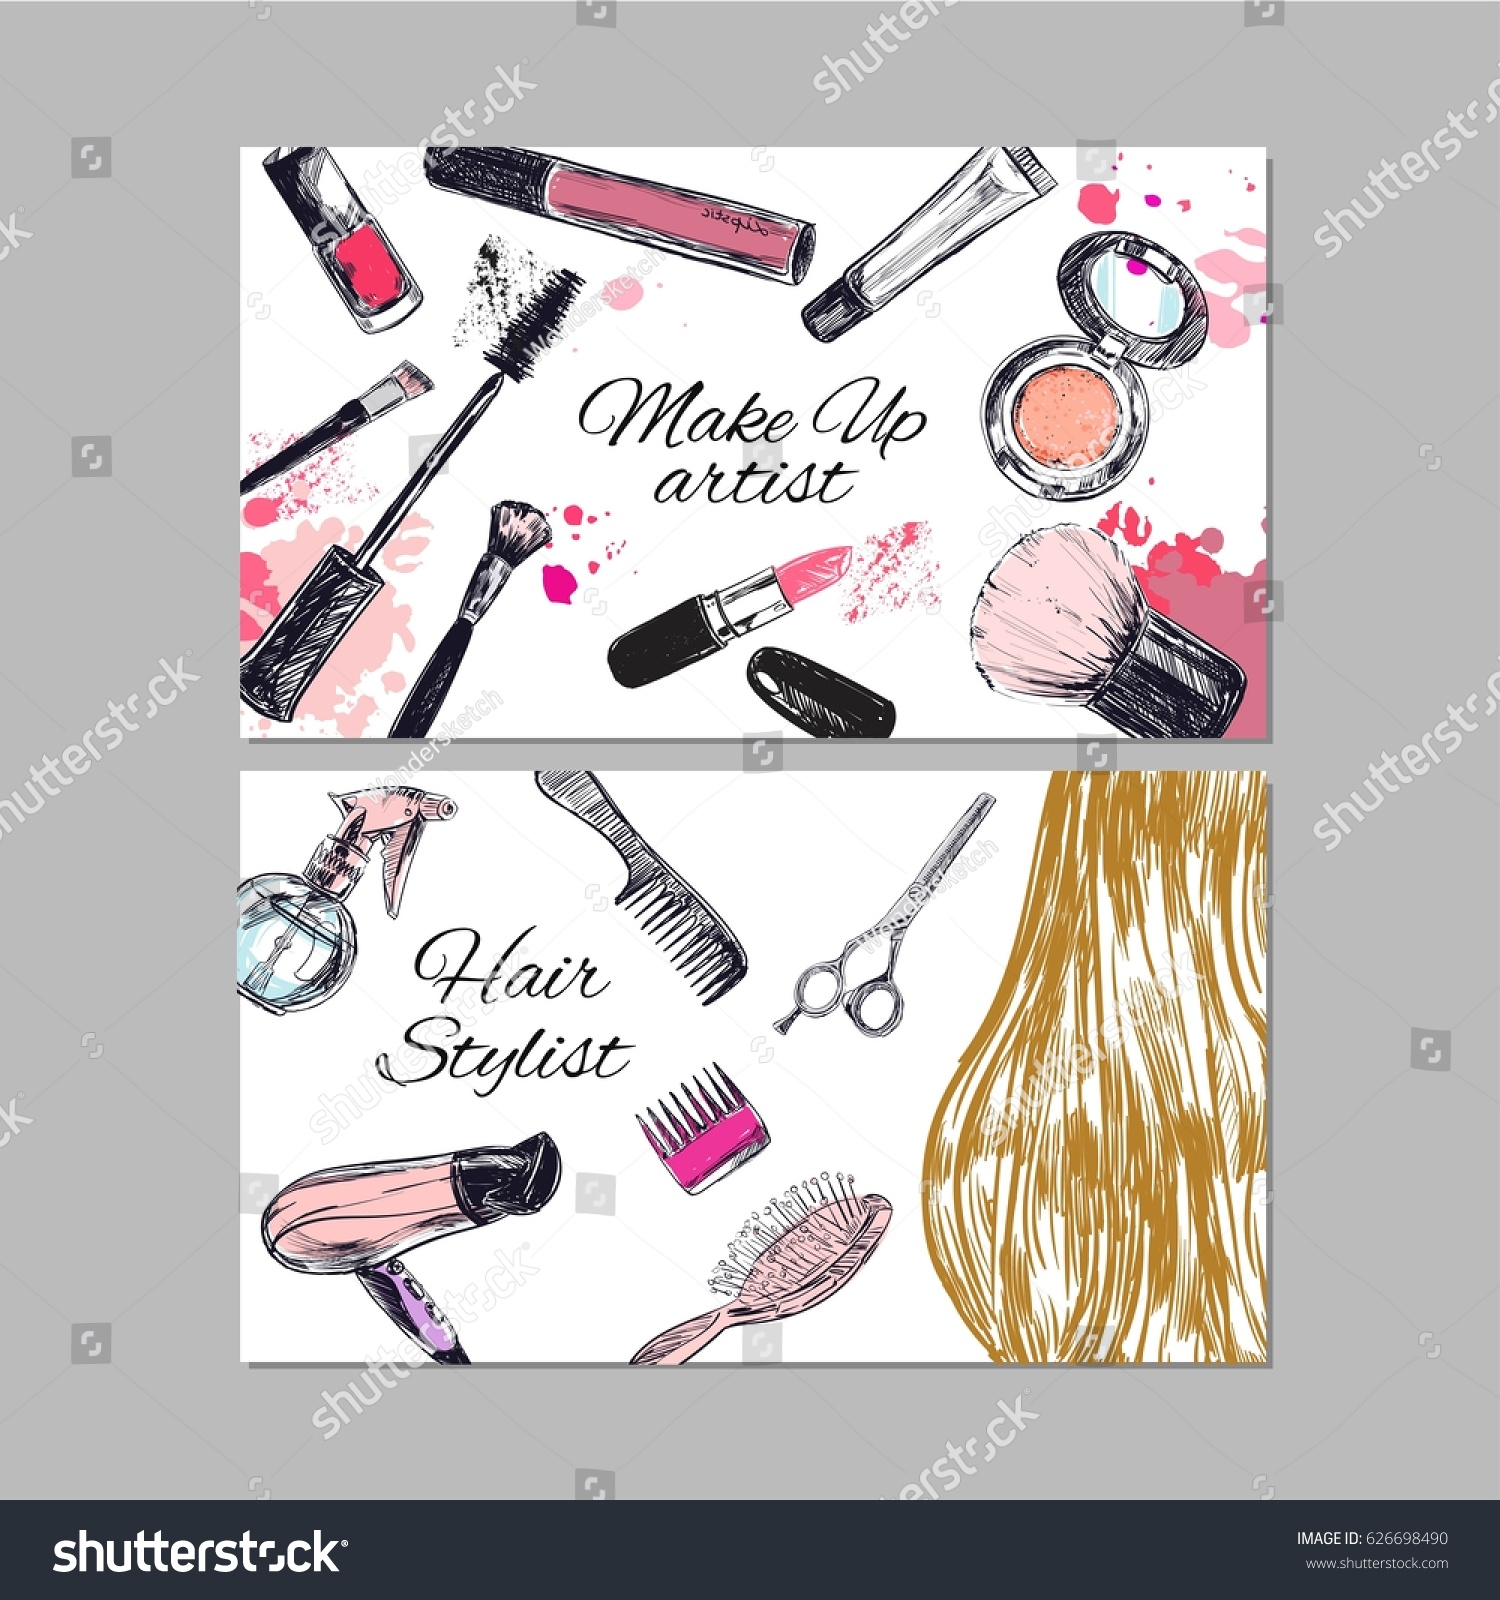 Make artist hair stylist business cards stock vector royalty free make up artist and hair stylist business cards beauty and fashion vector hand drawn friedricerecipe